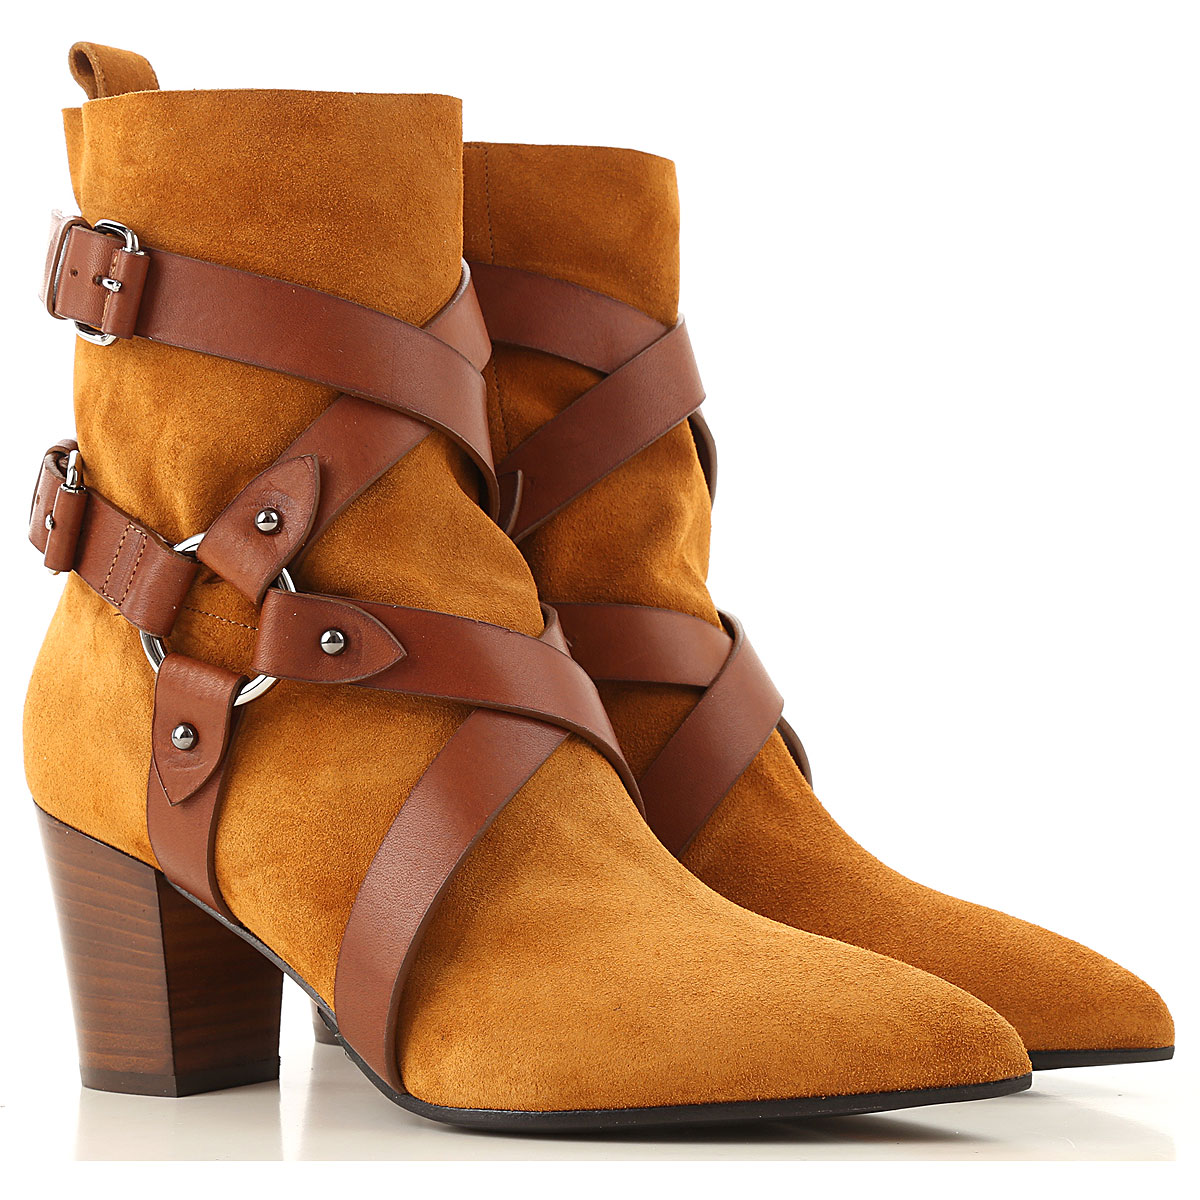 Balmain Boots for Women, Booties On Sale in Outlet, Leather Brown, Suede leather, 2019, 7 8 9